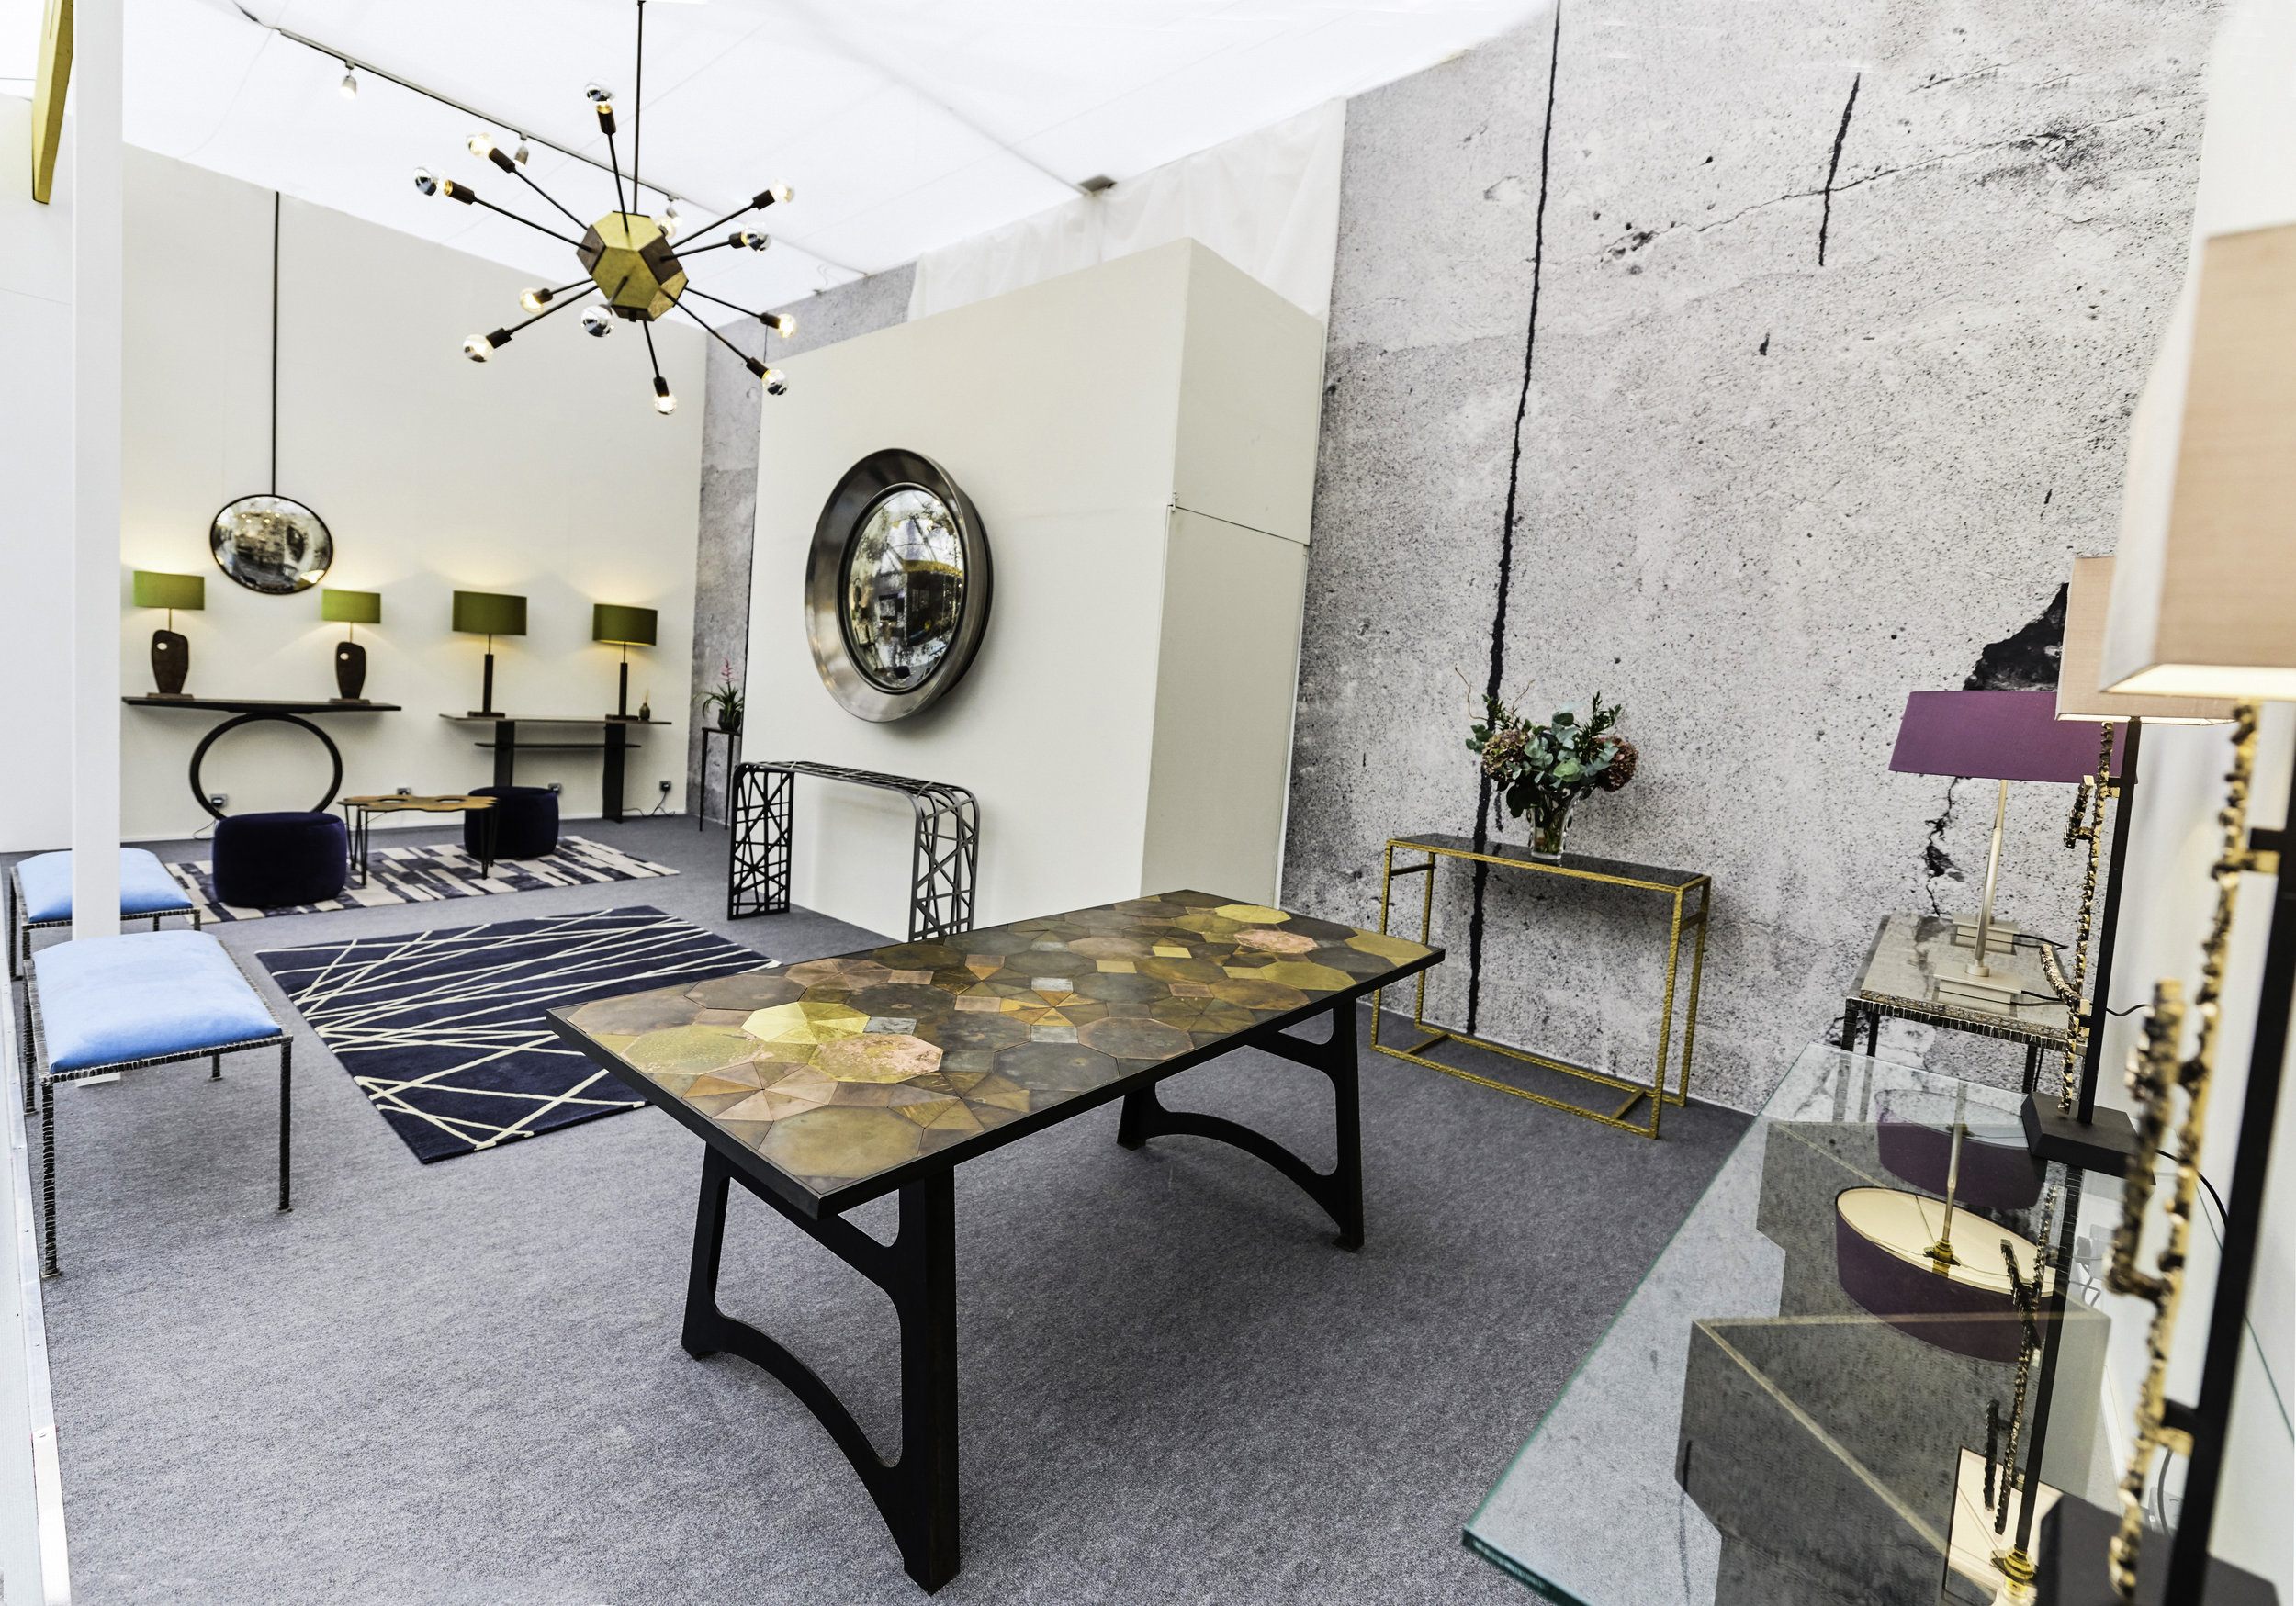 Blackbird Bespoke at Decorex International 2018; on display  Mosaic dining table  (centre),  Birds Nest  console table and  Luna Mirror  (far right),  Hepworth  table lamps (far left) and TO1 chandelier ©Blackbird Bespoke